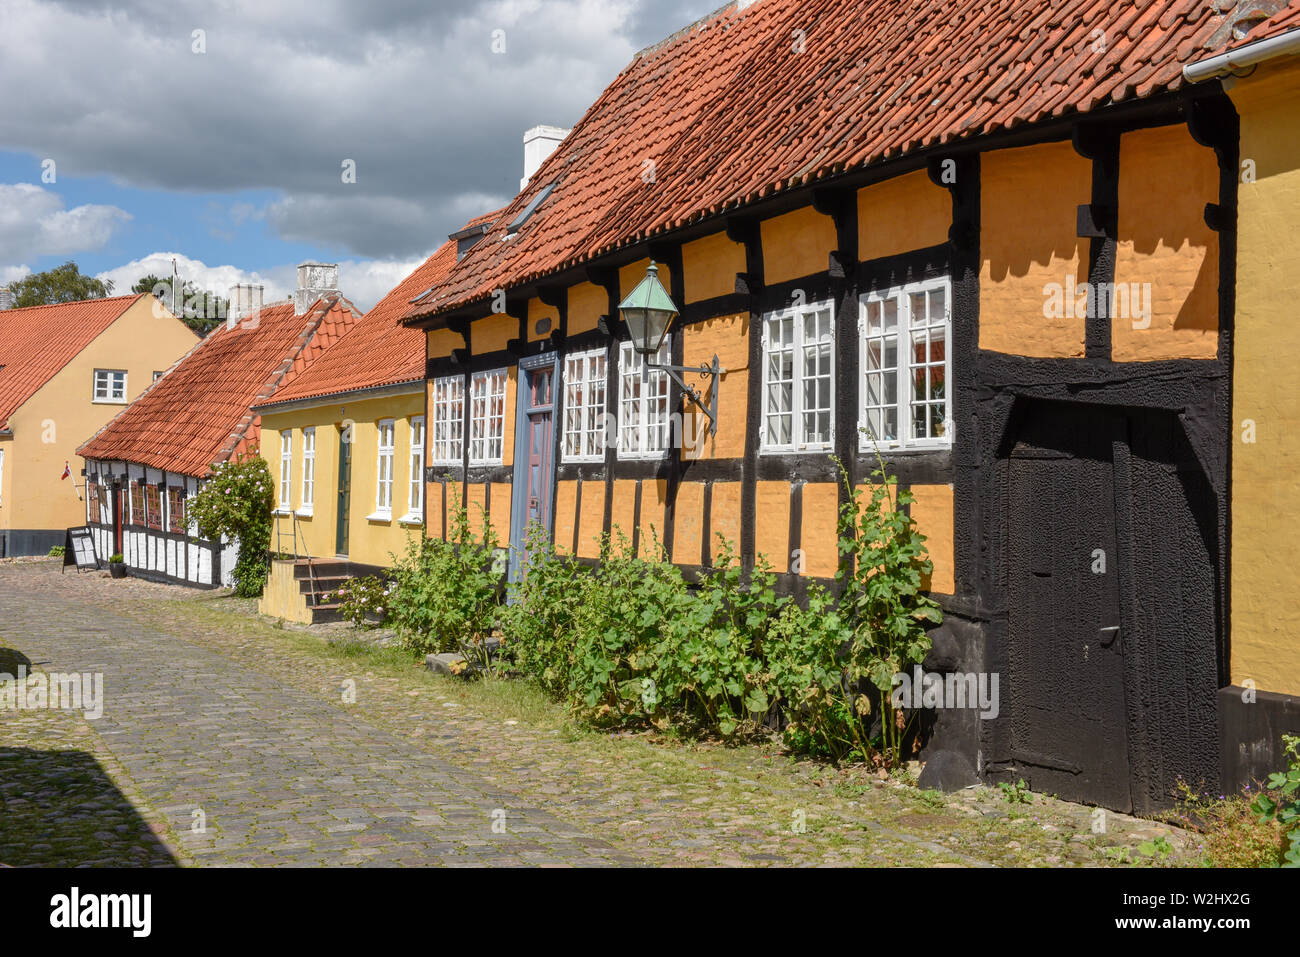 Ebeltoft, Denmark - 22 June 2019: the traditional historic village of Ebeltoft on Jutland in Denmark Stock Photo